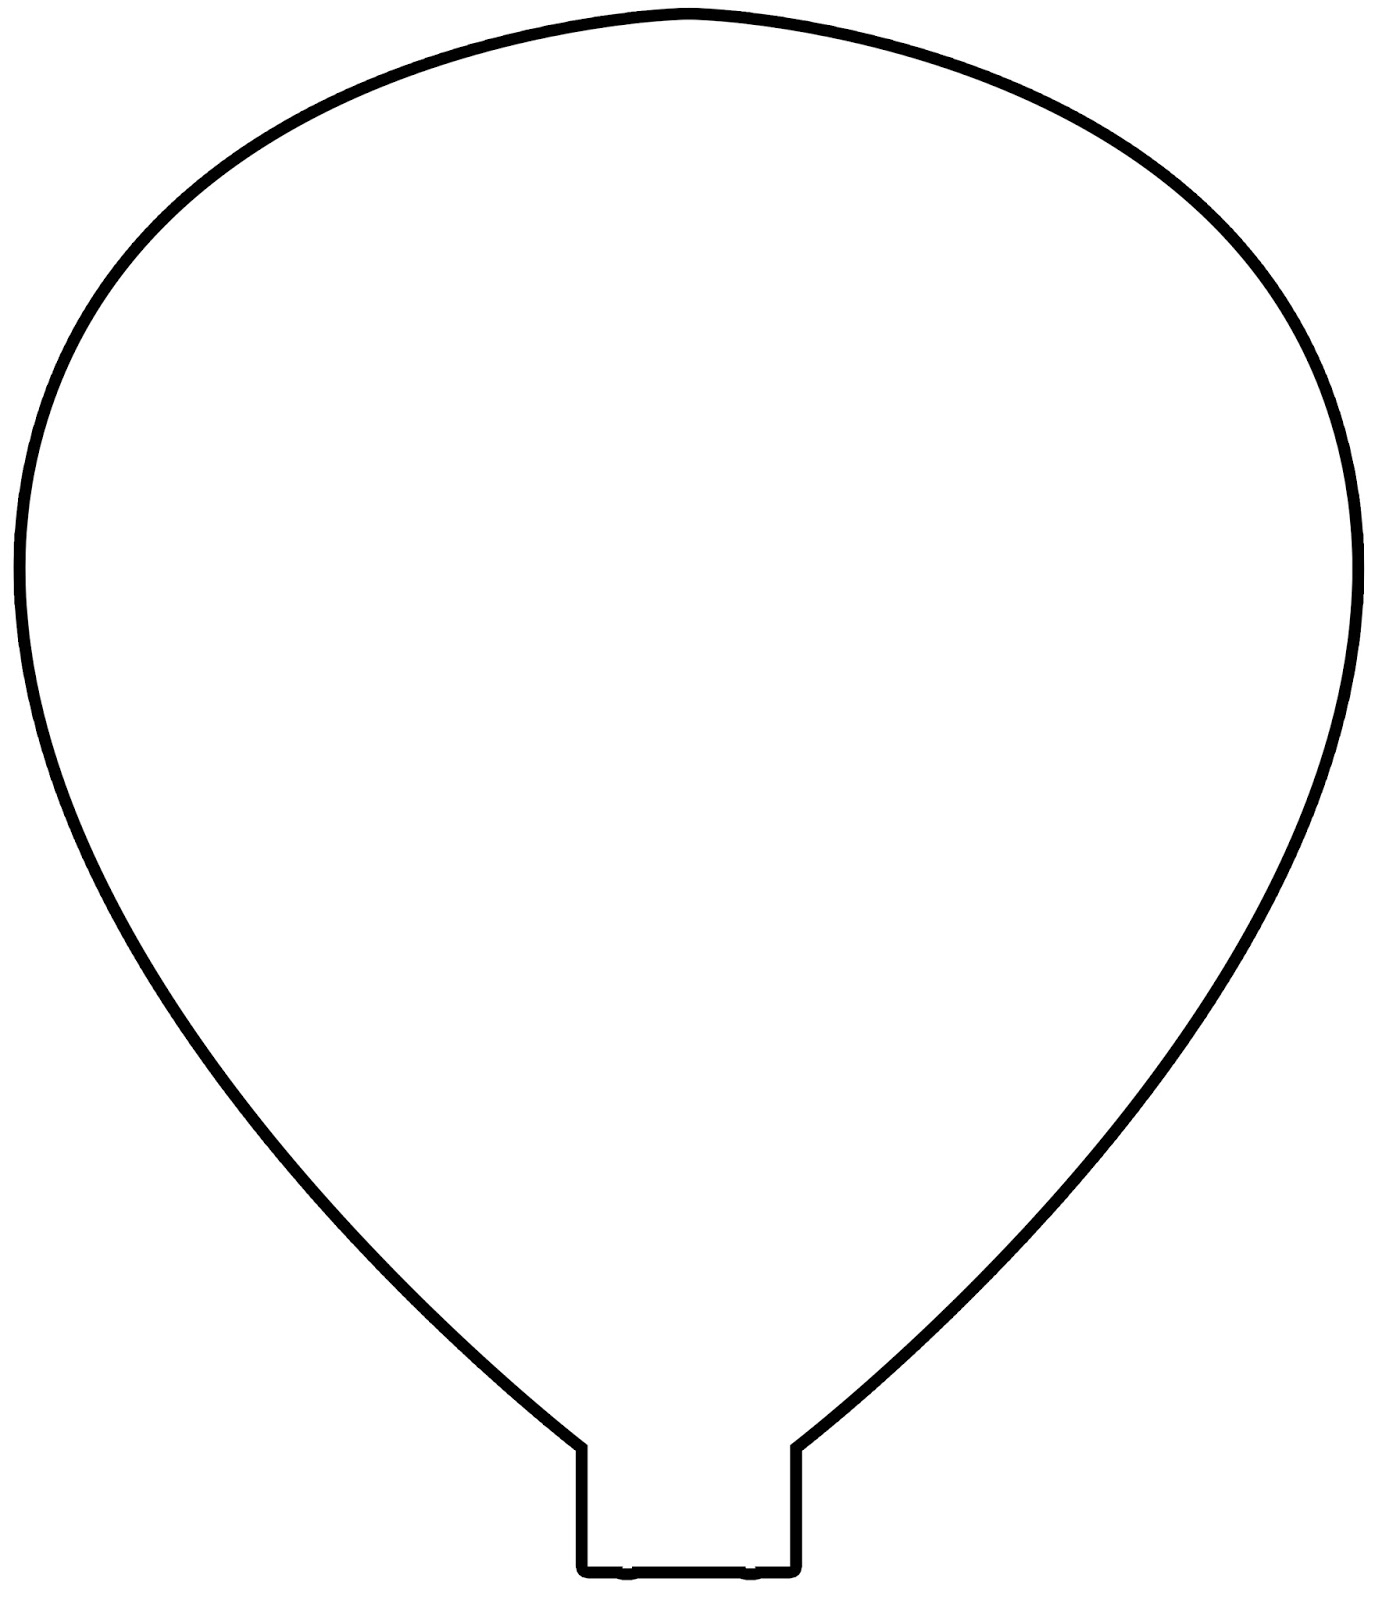 Hot Air Balloon Outline